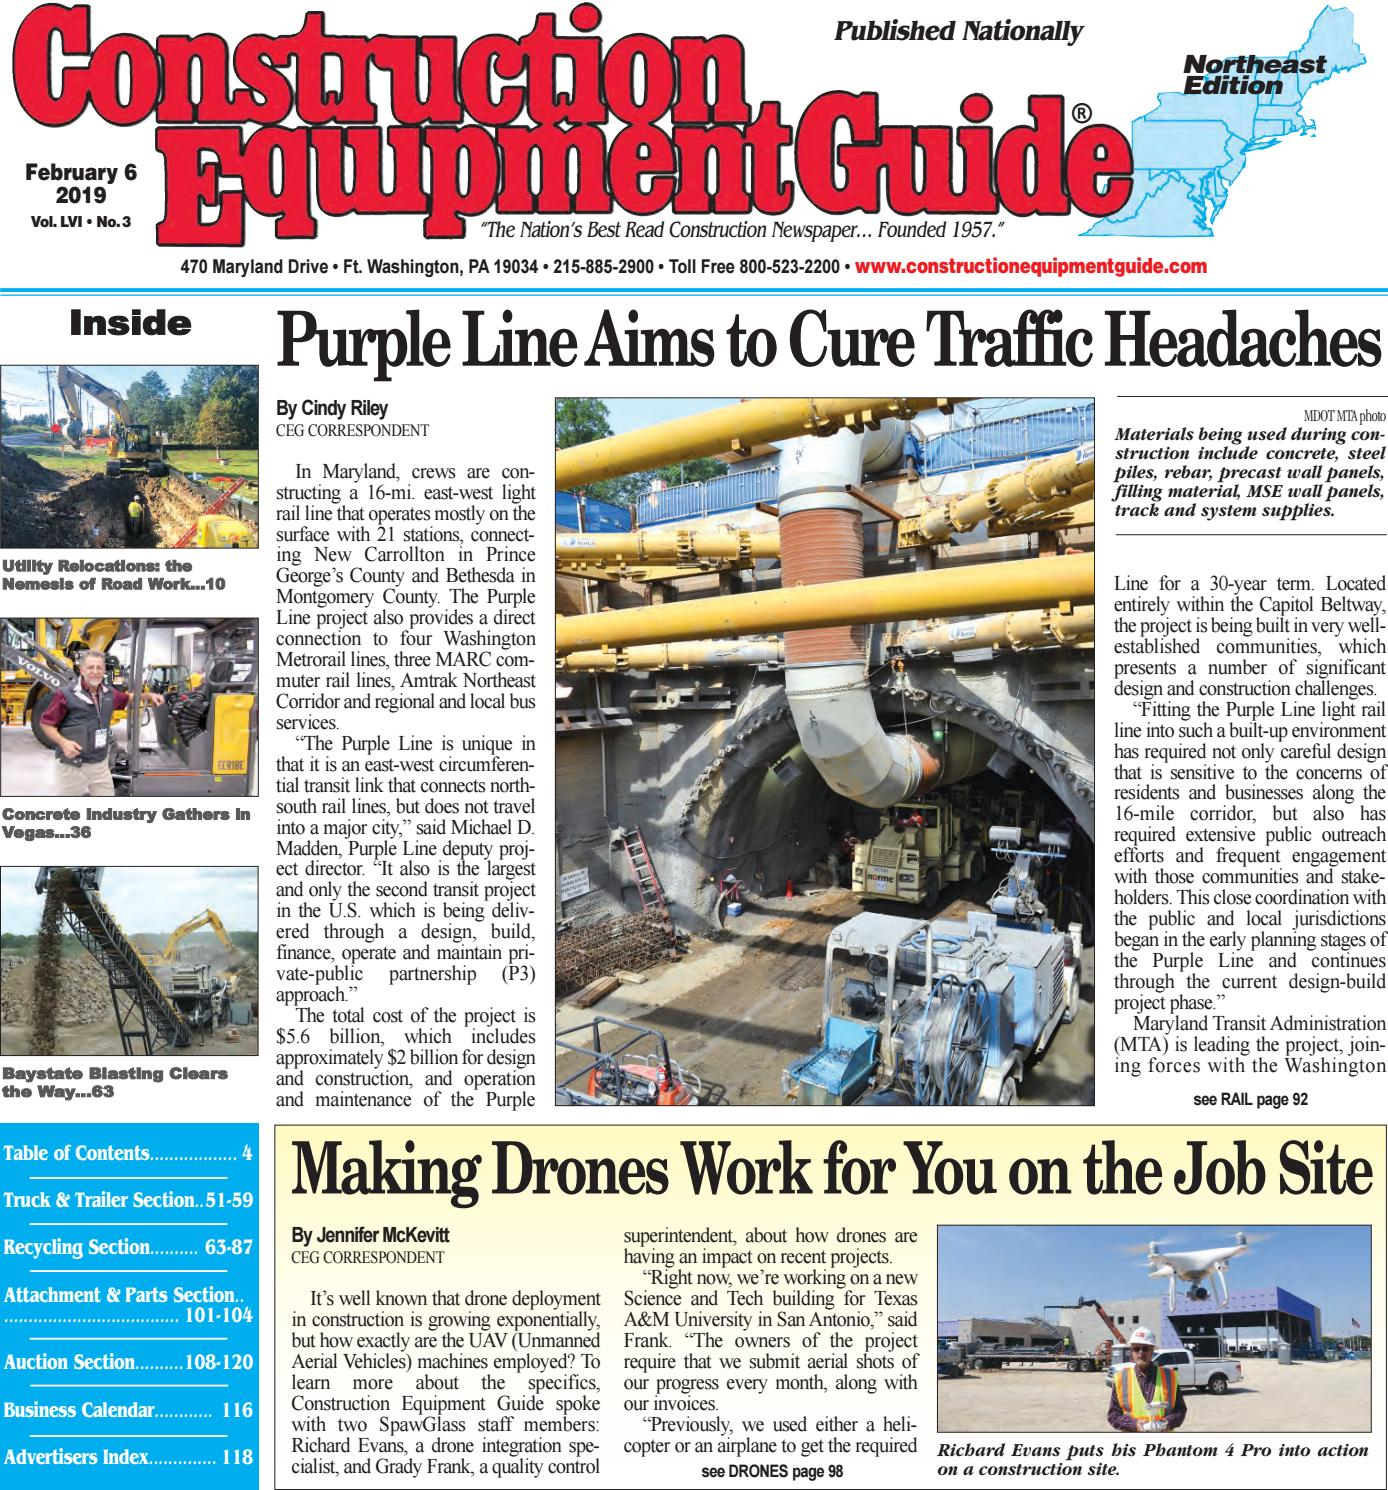 Northeast 3 February 6, 2019 by Construction Equipment Guide